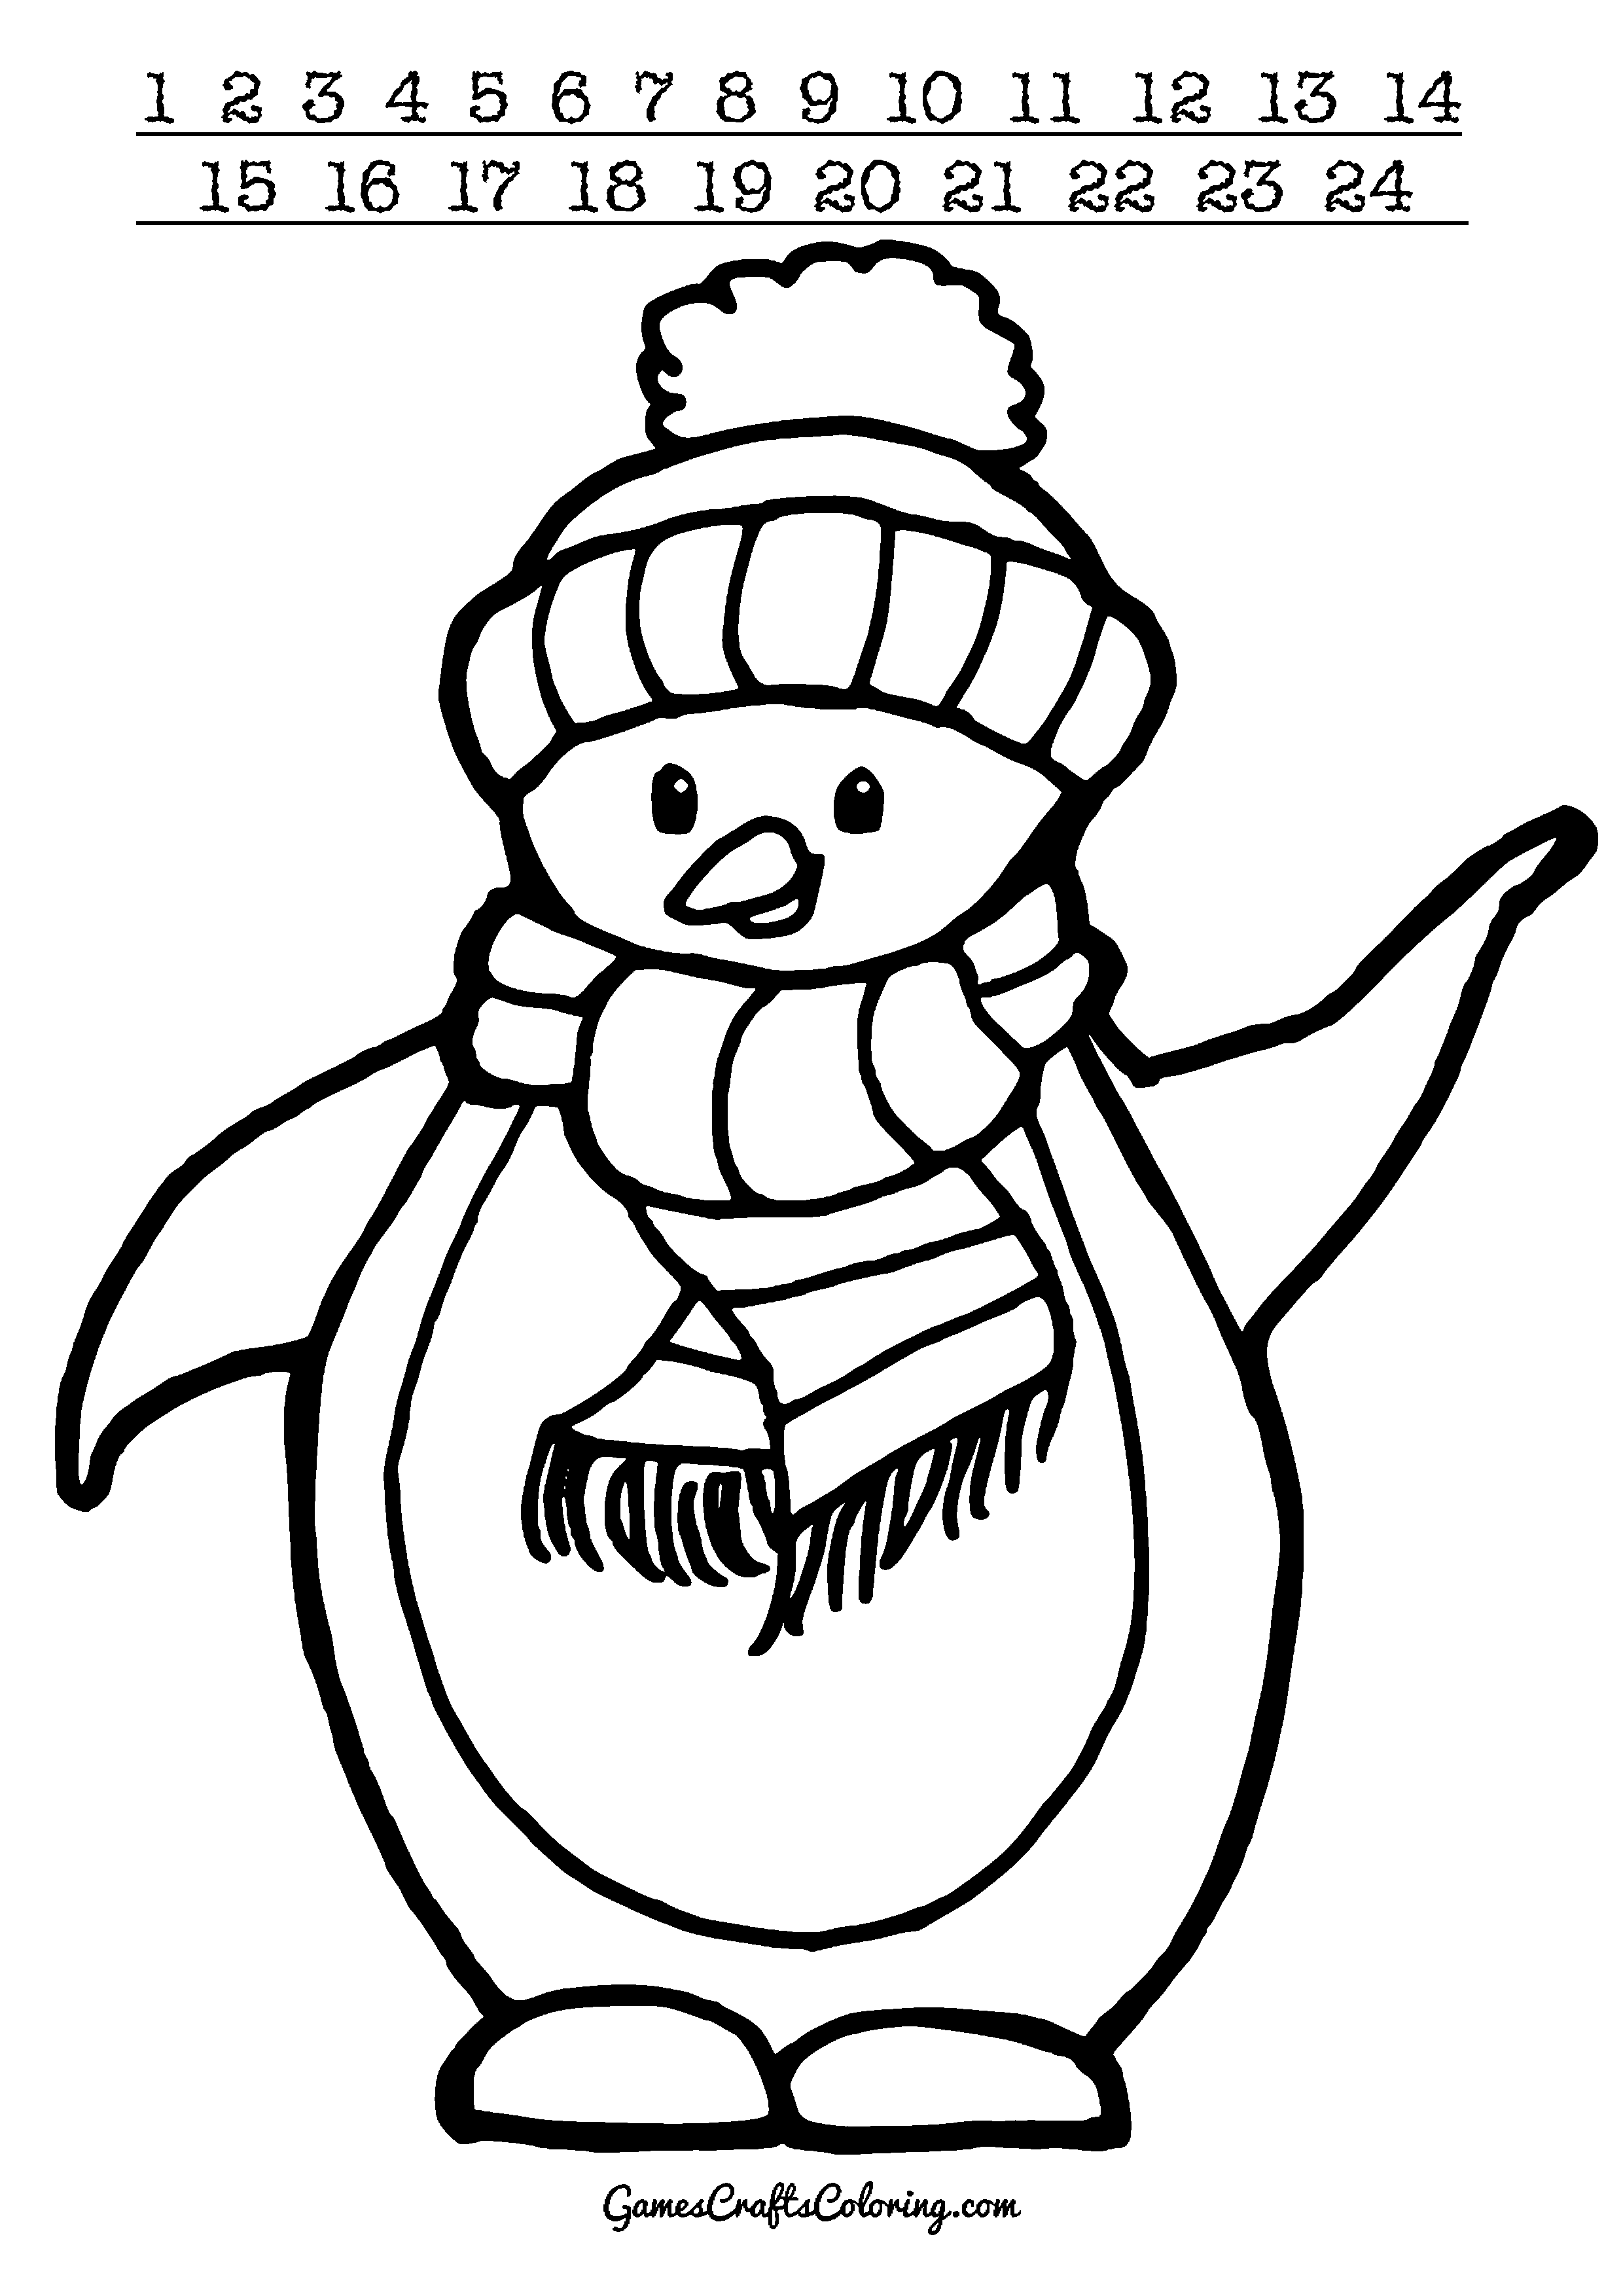 penguin pictures to print get this cartoon penguin coloring pages 31969 penguin pictures print to